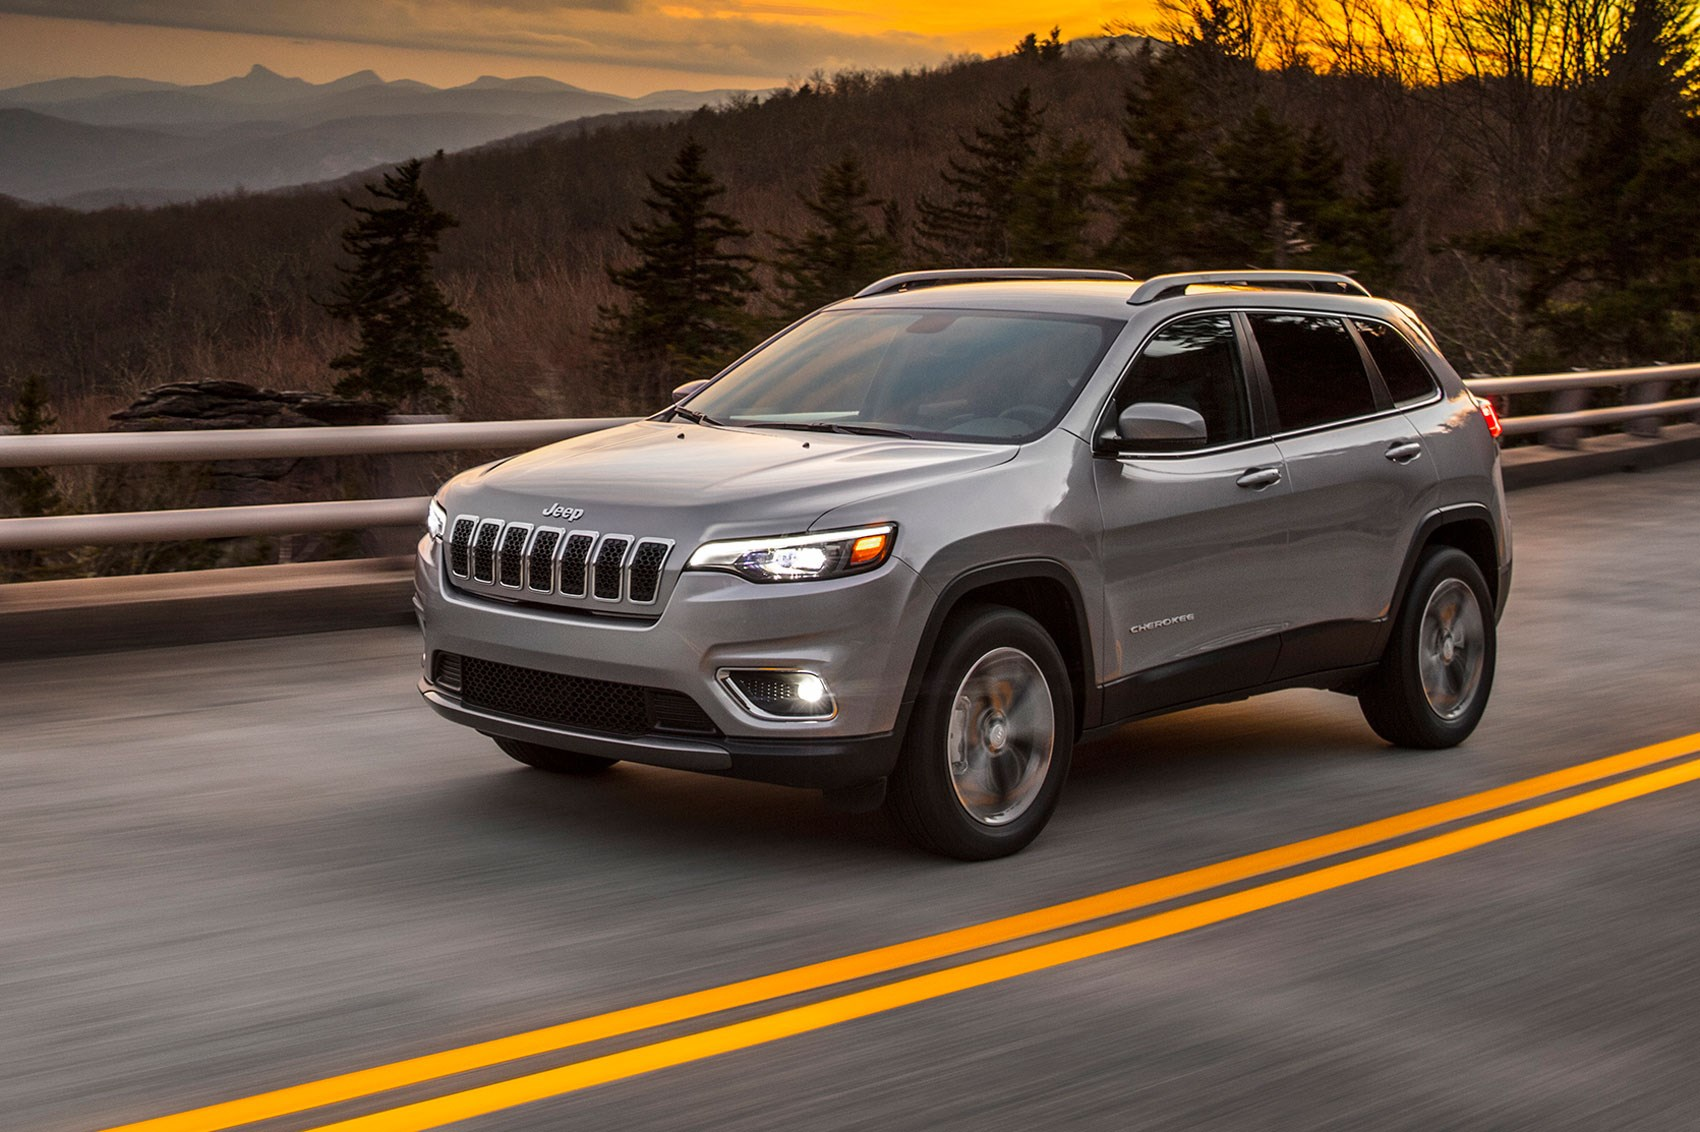 Will the 2019 Jeep Cherokee be a hybrid?